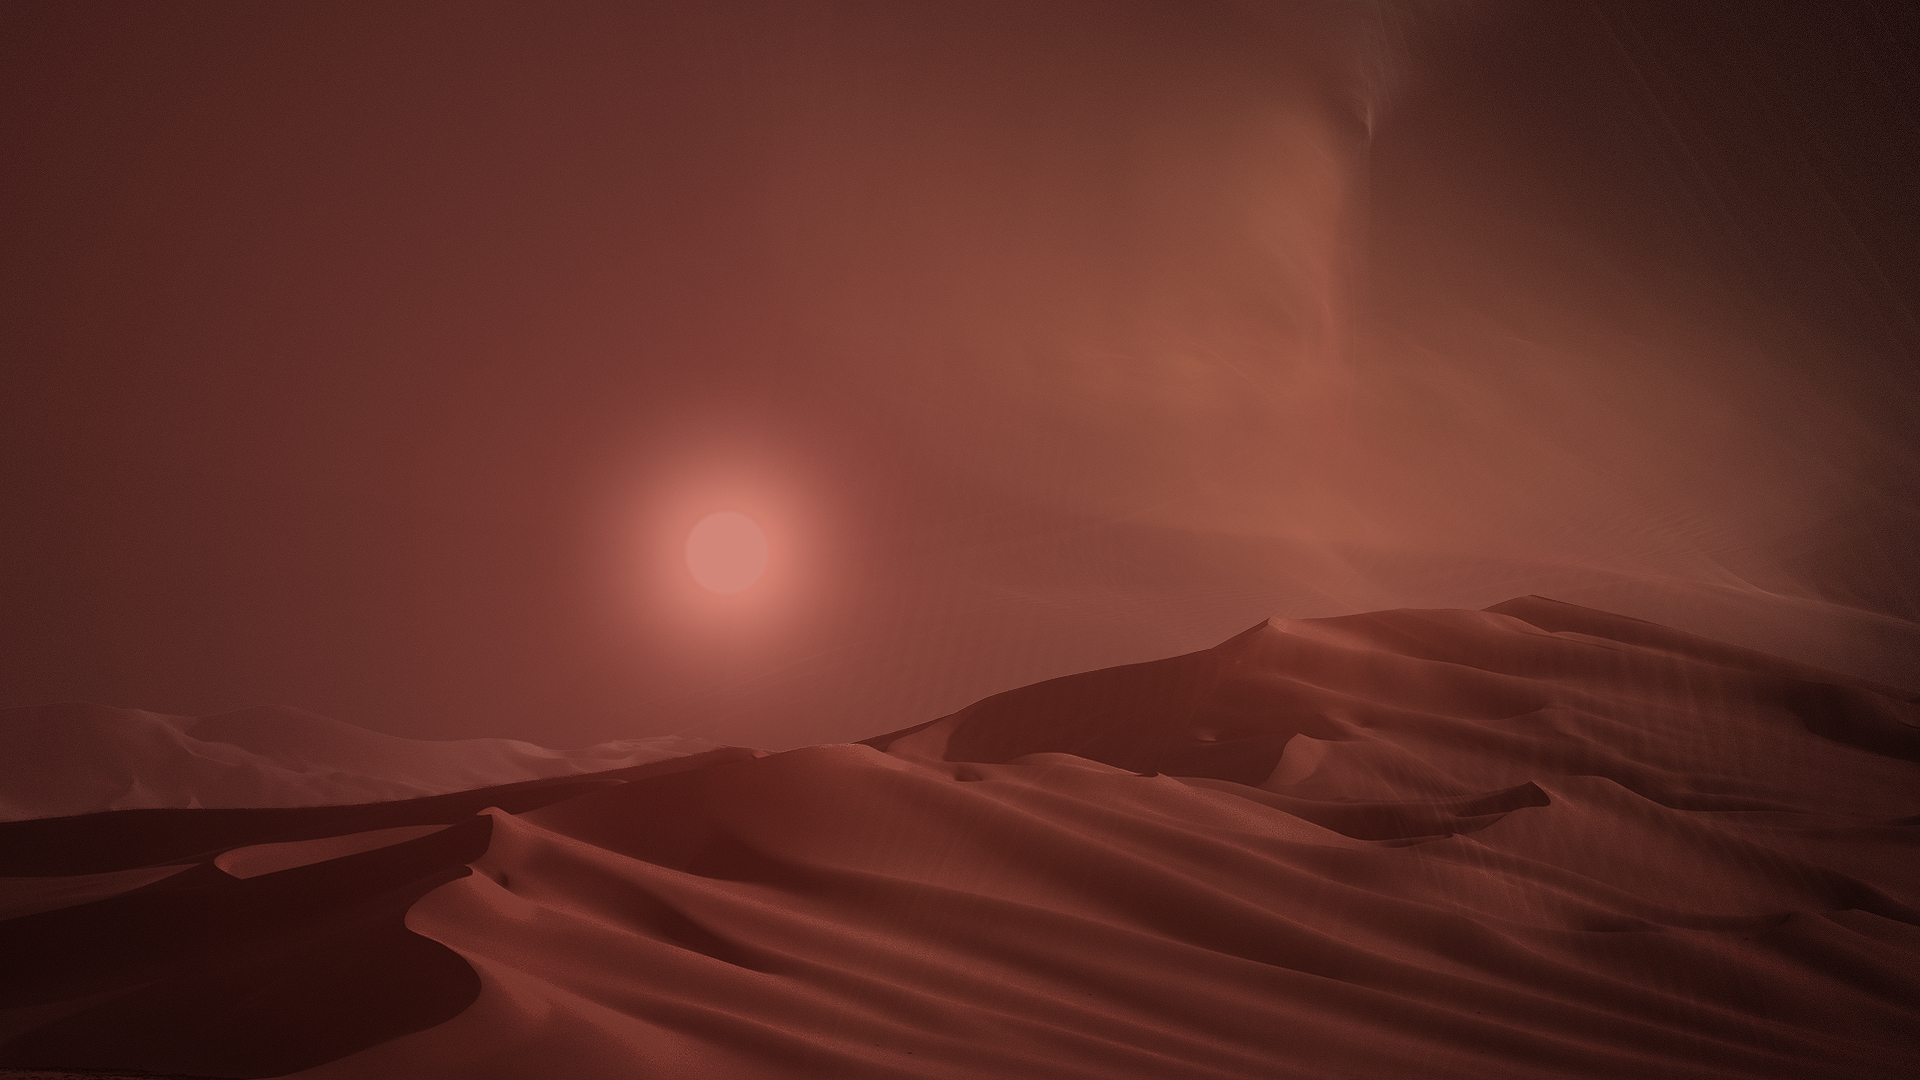 red_desert_storm_by_lymos-d519l83.jpg